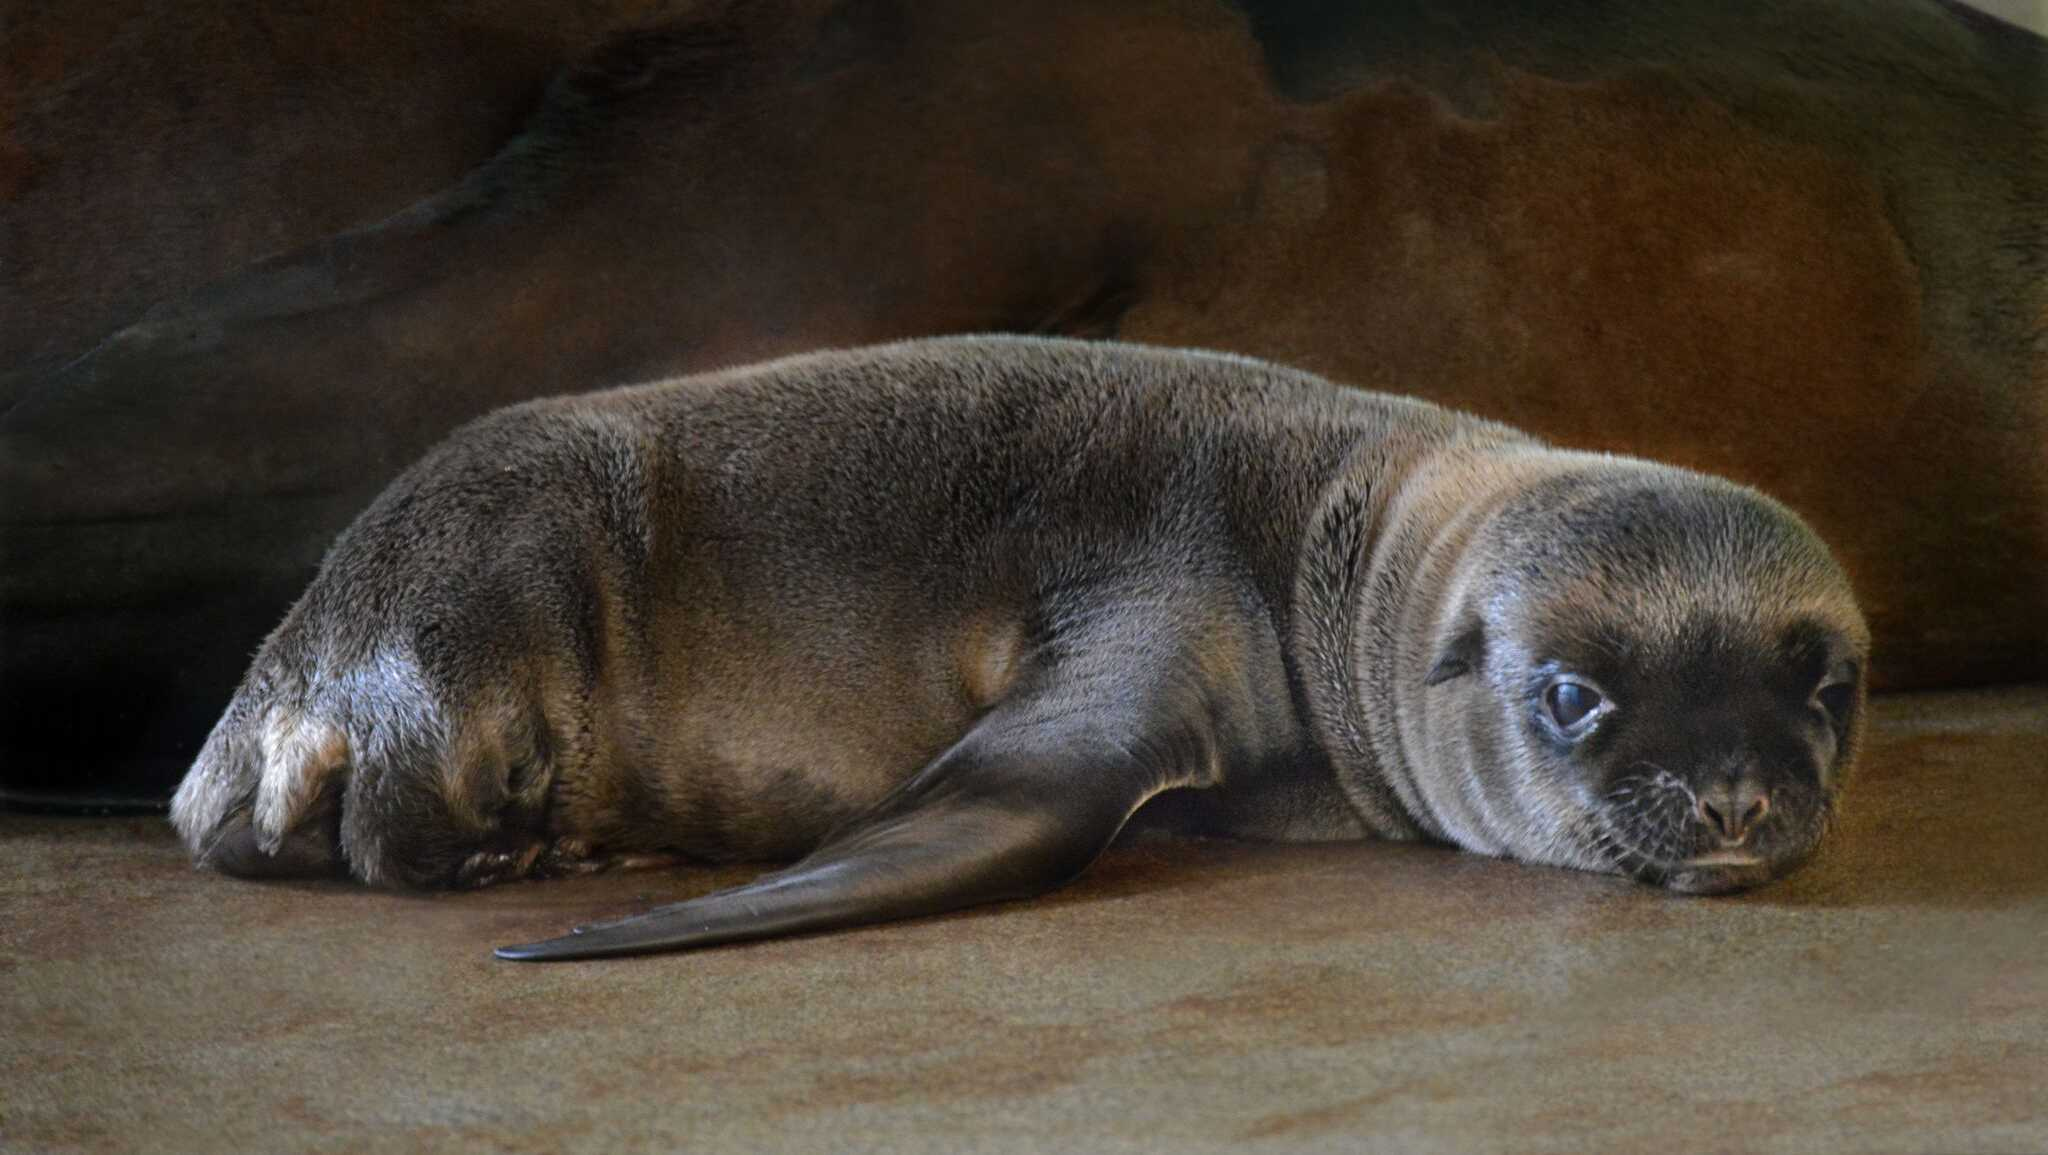 Ron, a week-old California sea lion pup, rests beside his mother, Tipper, a five-year-old sea lion, at the New England Aquarium's New Balance Foundation Marine Mammal Center.